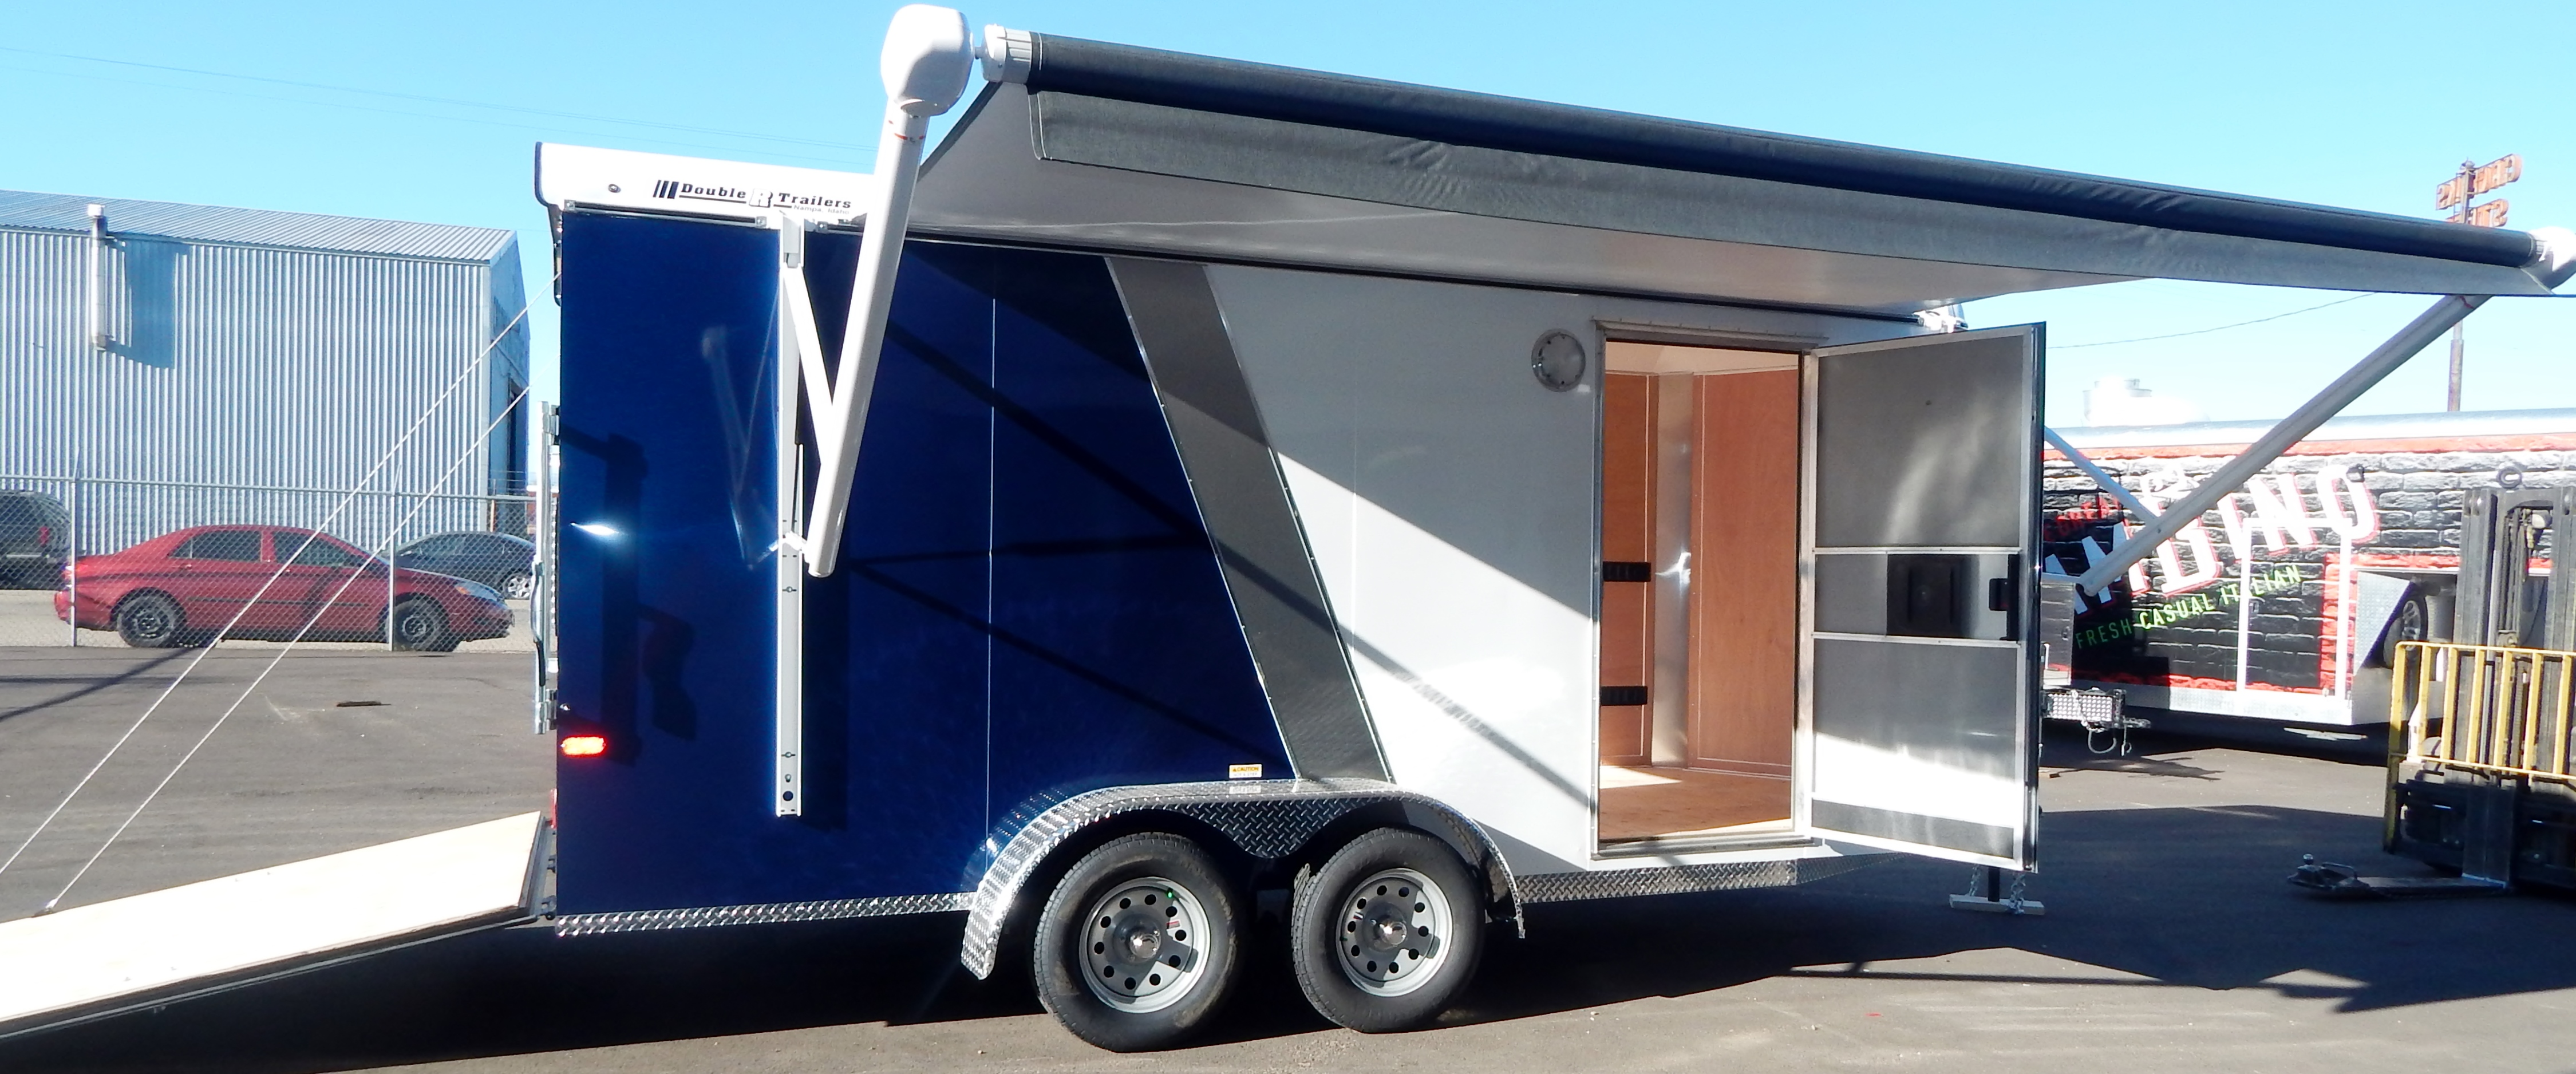 cosignment sundowner original rental awnings and gooseneck with elk trailer valley horse sales weekend trailers package awning